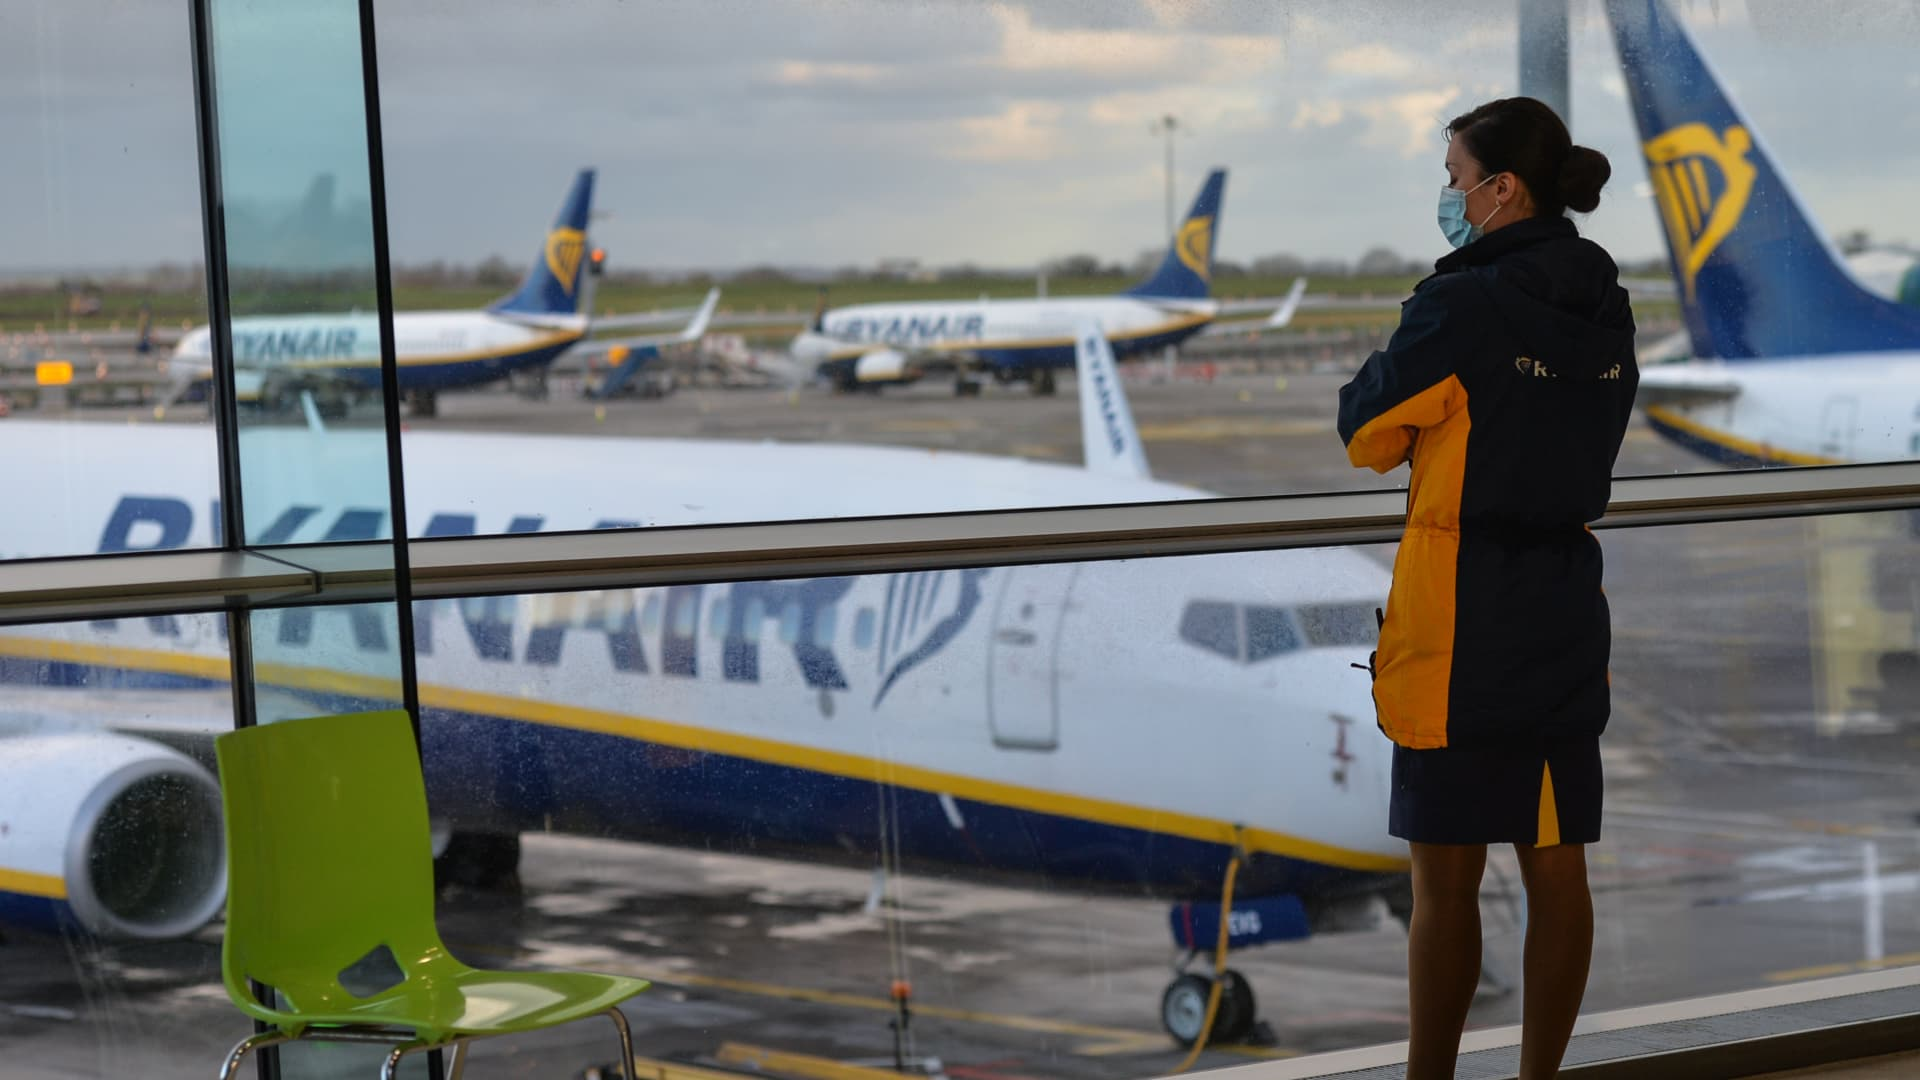 A member of Ryanair cabin crew looks out of the window at Ryanair planes.